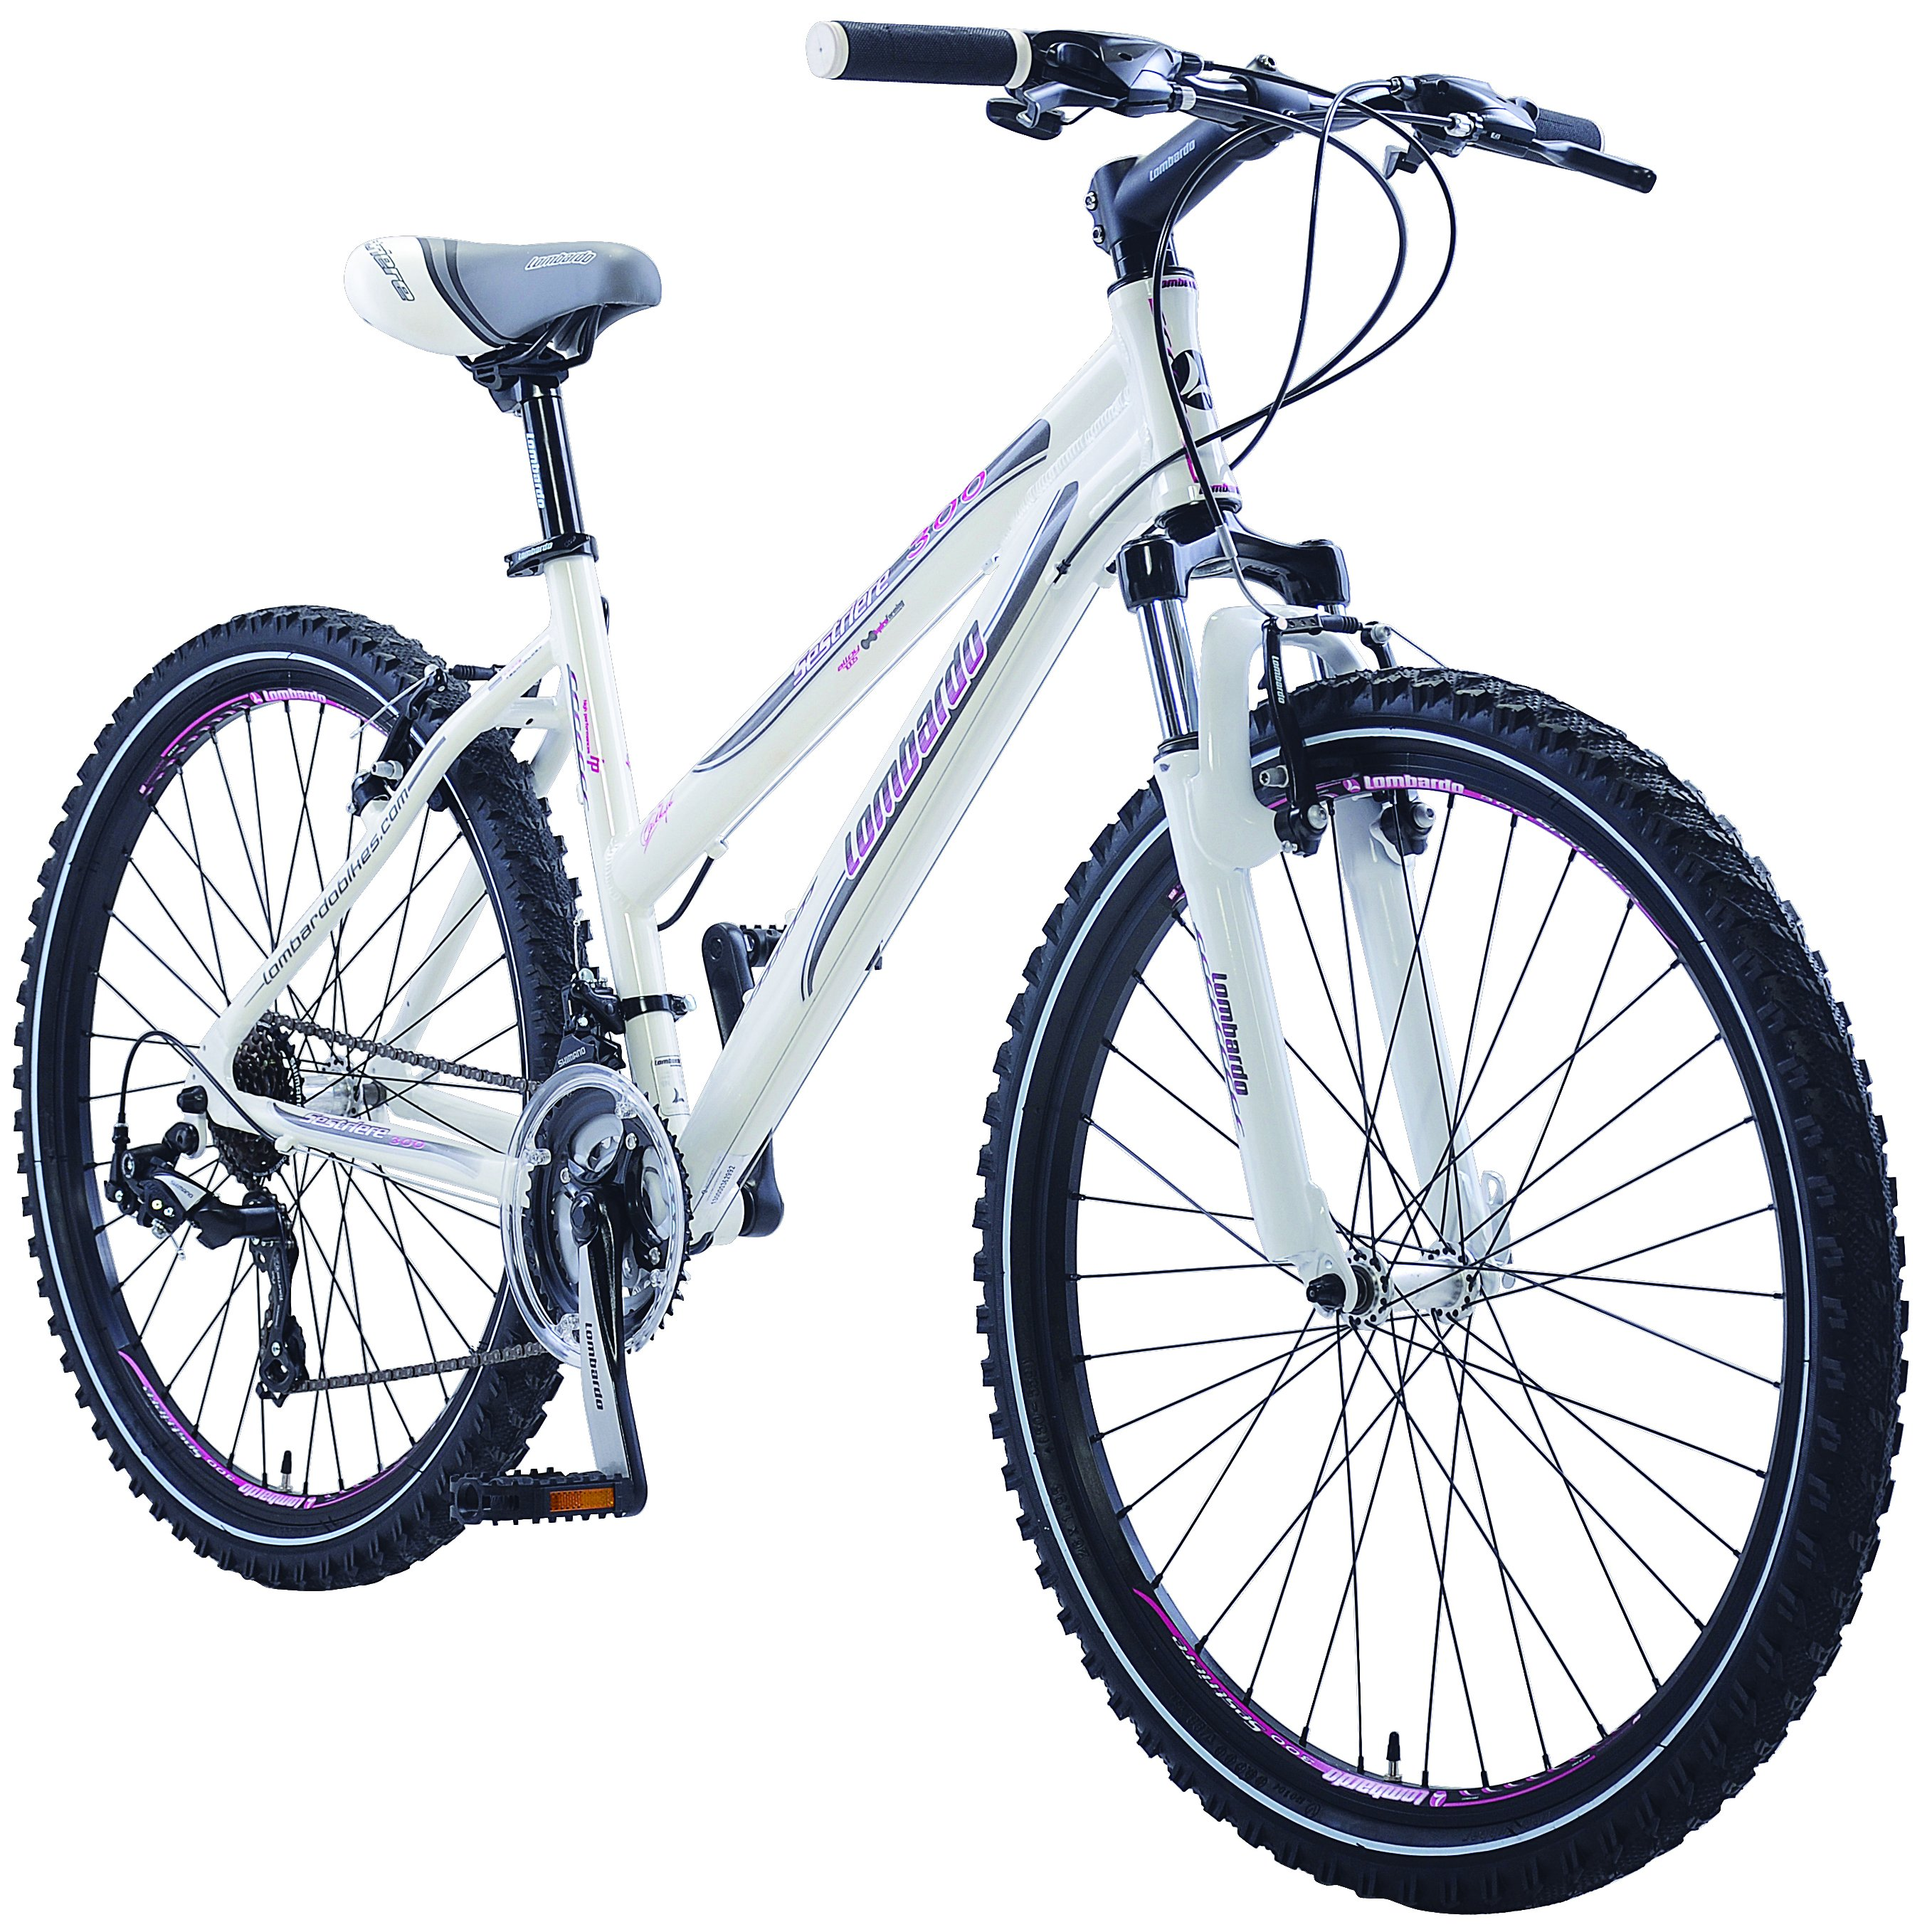 "Lombardo Sestriere 300L Woman's 26"" 21 Speed Mountain Bike Handmade"